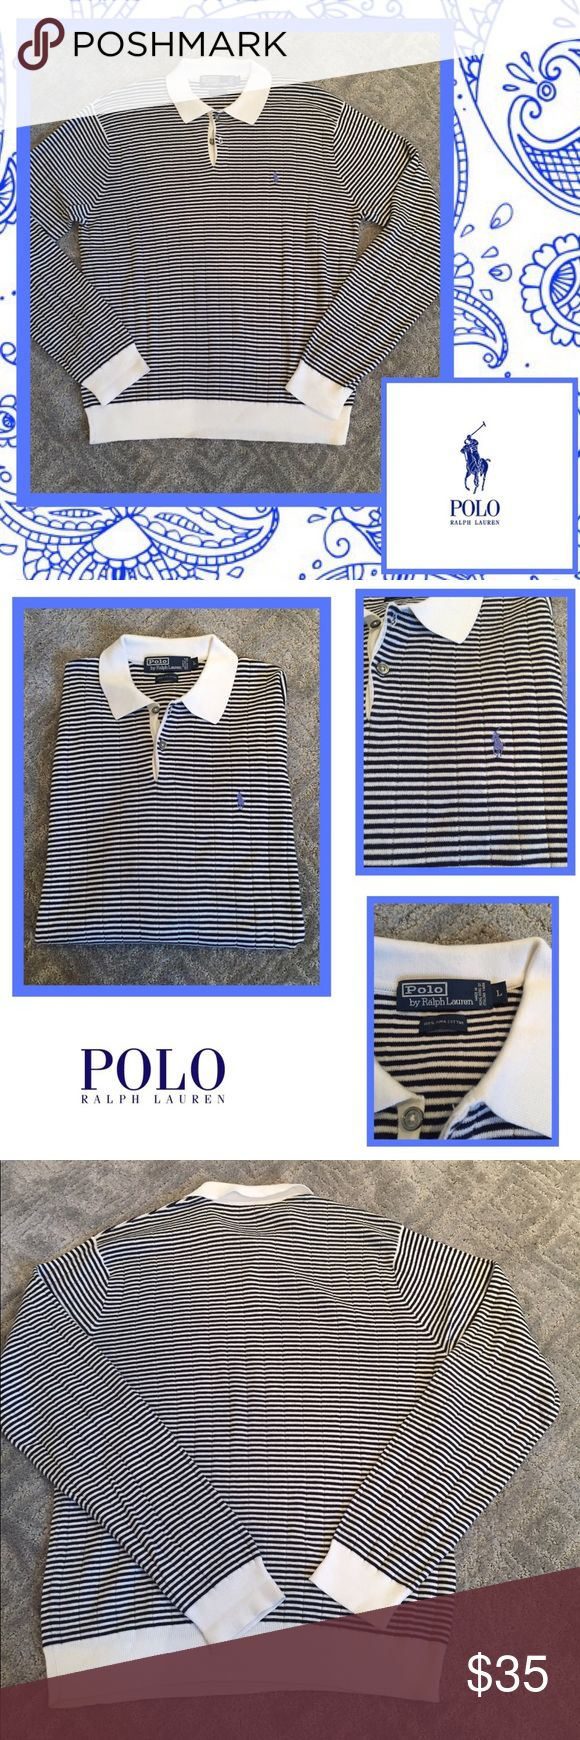 🏇Polo by Ralph Lauren light weight sweater🏇 Men's light weight sweater by Polo. 100% puma cotton and is super soft. Navy and white striped w light blue polo horse. White color and trim throughout. Excellent condition Polo by Ralph Lauren Sweaters